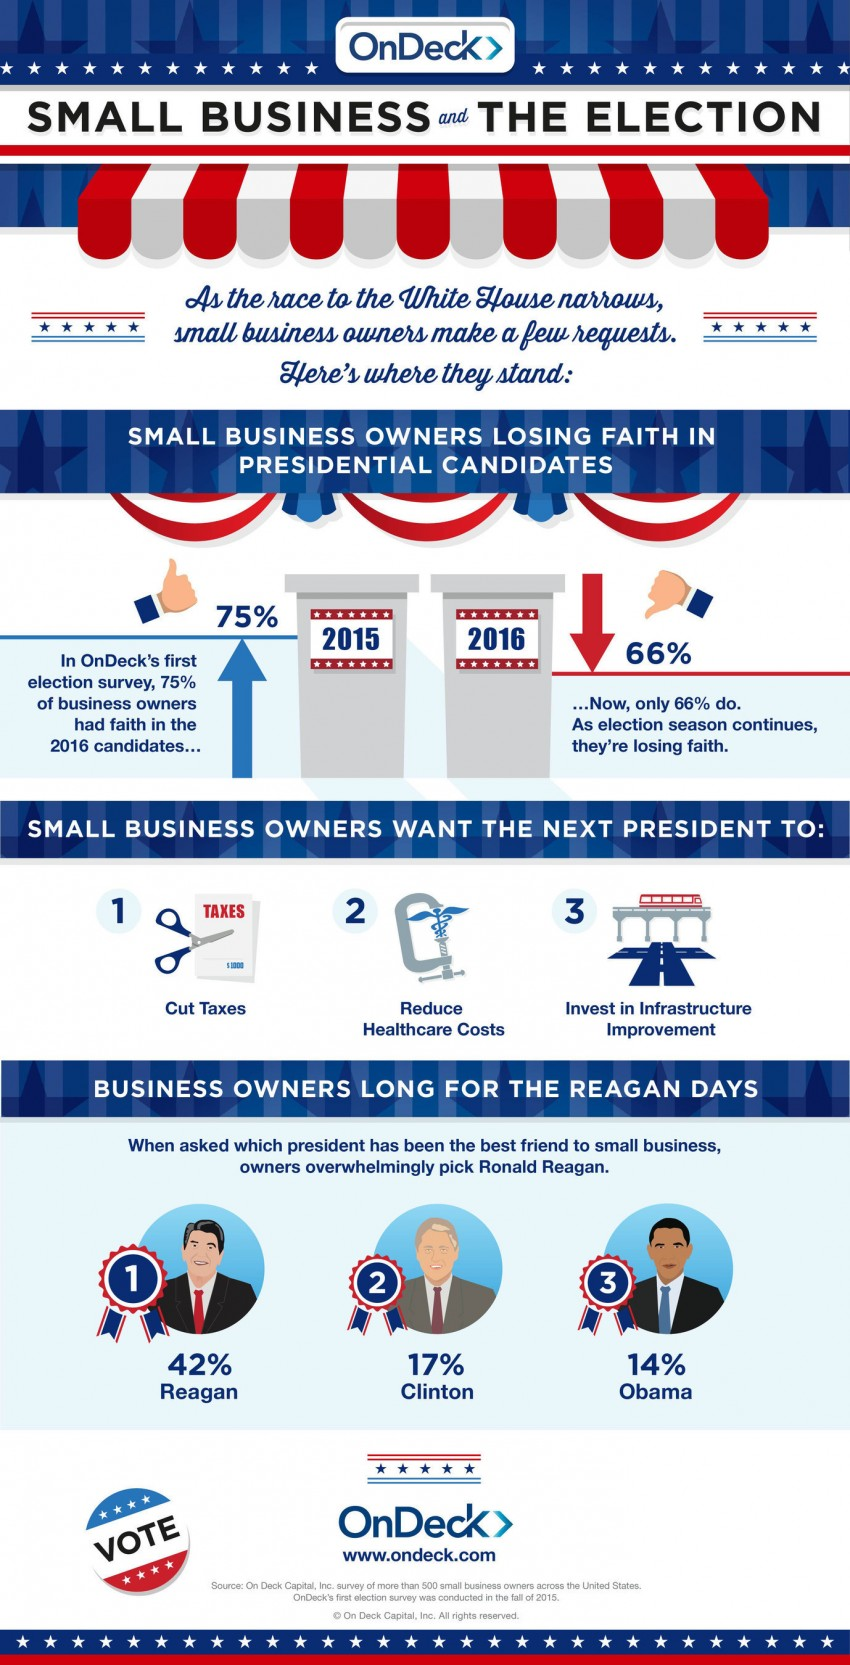 OnDeck Survey Reveals Small Business Owners Losing Faith in Presidential Candidates - 34 Percent of Small Business Owners Do Not Have Faith in Any of the Current Candidates, Up from 25 Percent Last Fall (PRNewsFoto/On Deck Capital, Inc.)